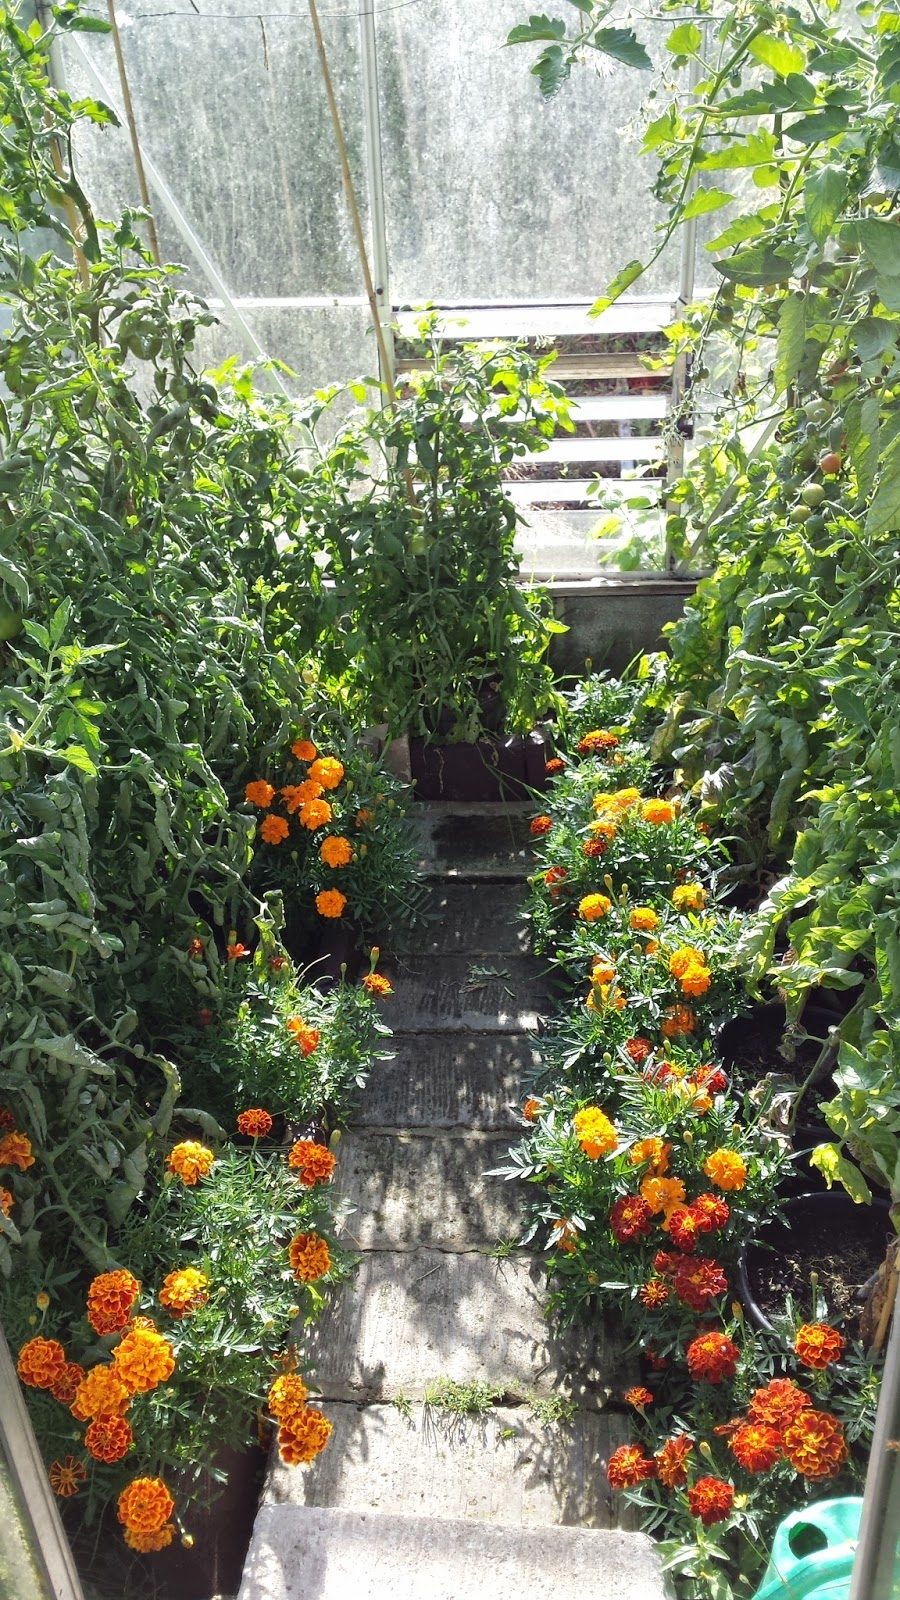 French Marigolds and Tomatoes